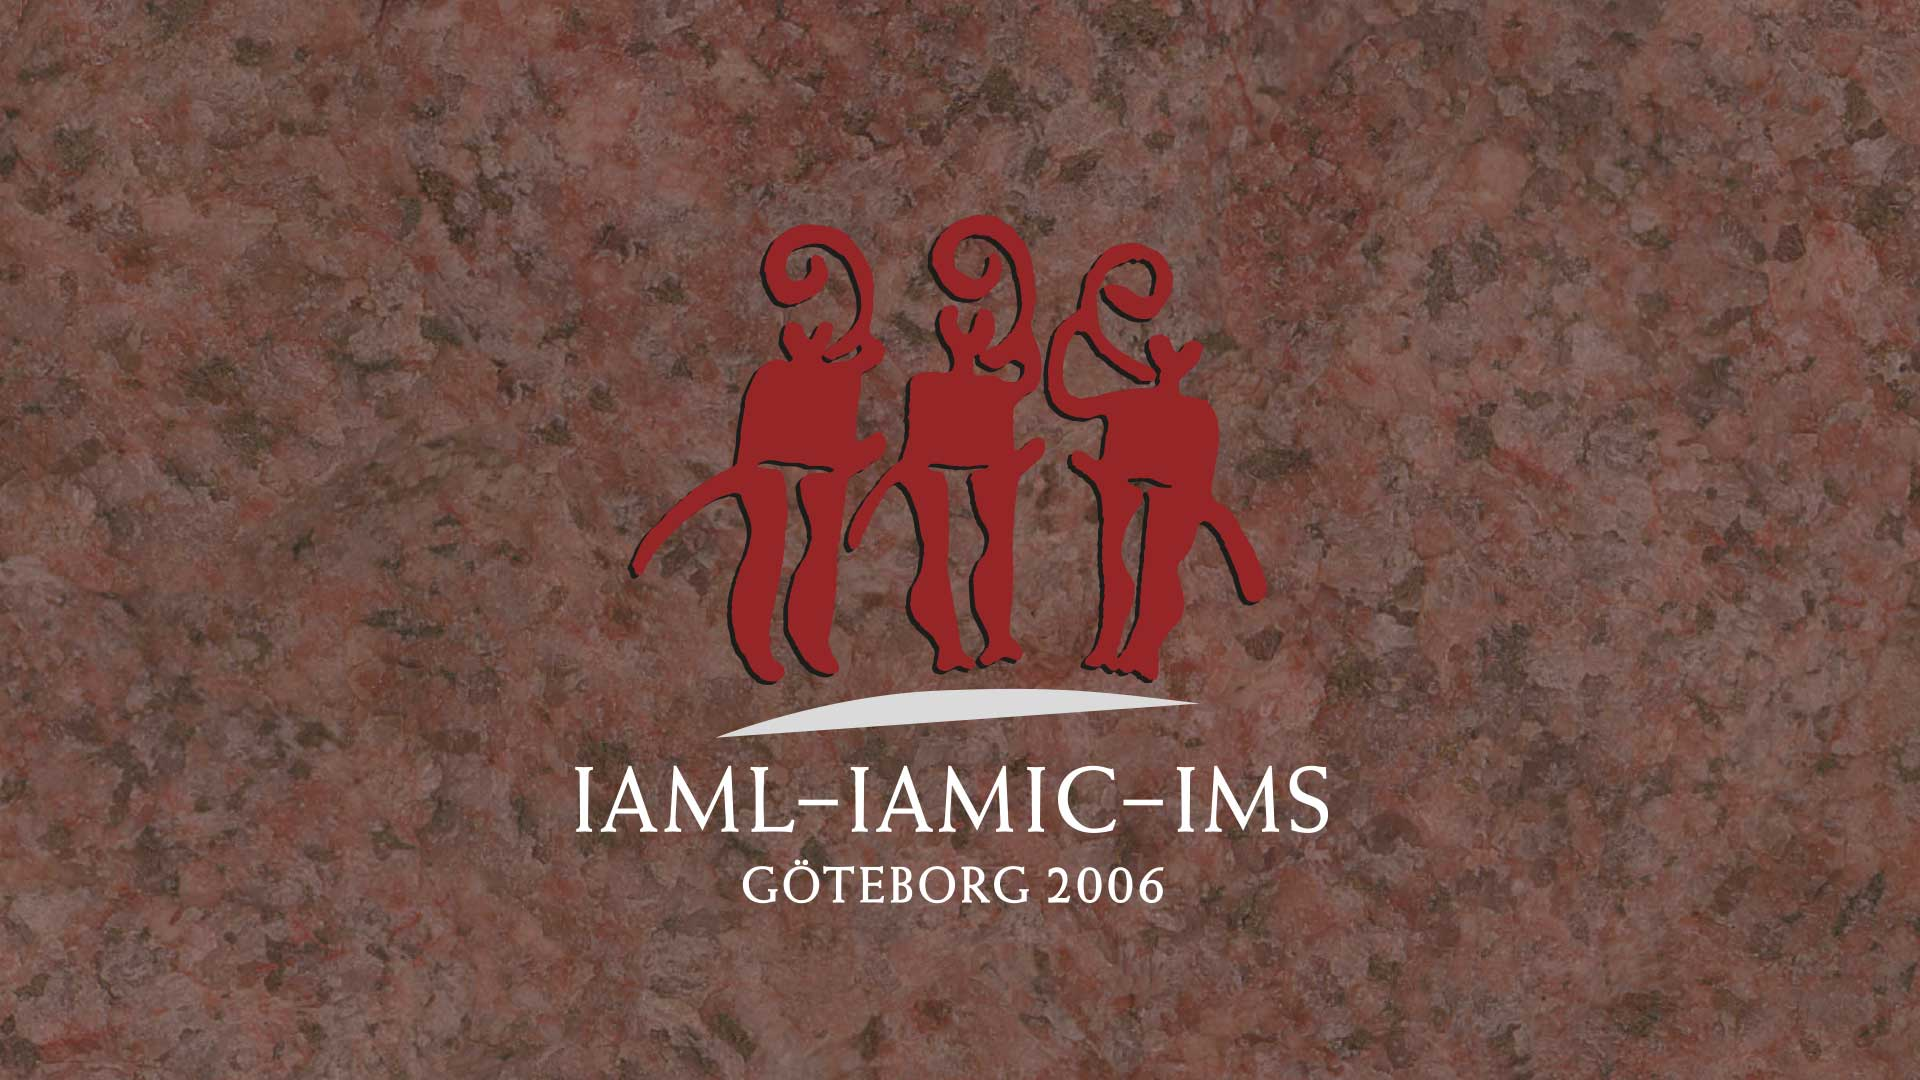 Invitation to IAML-IAMIC-IMS Conference, Göteborg, Sweden, June 18-23, 2006